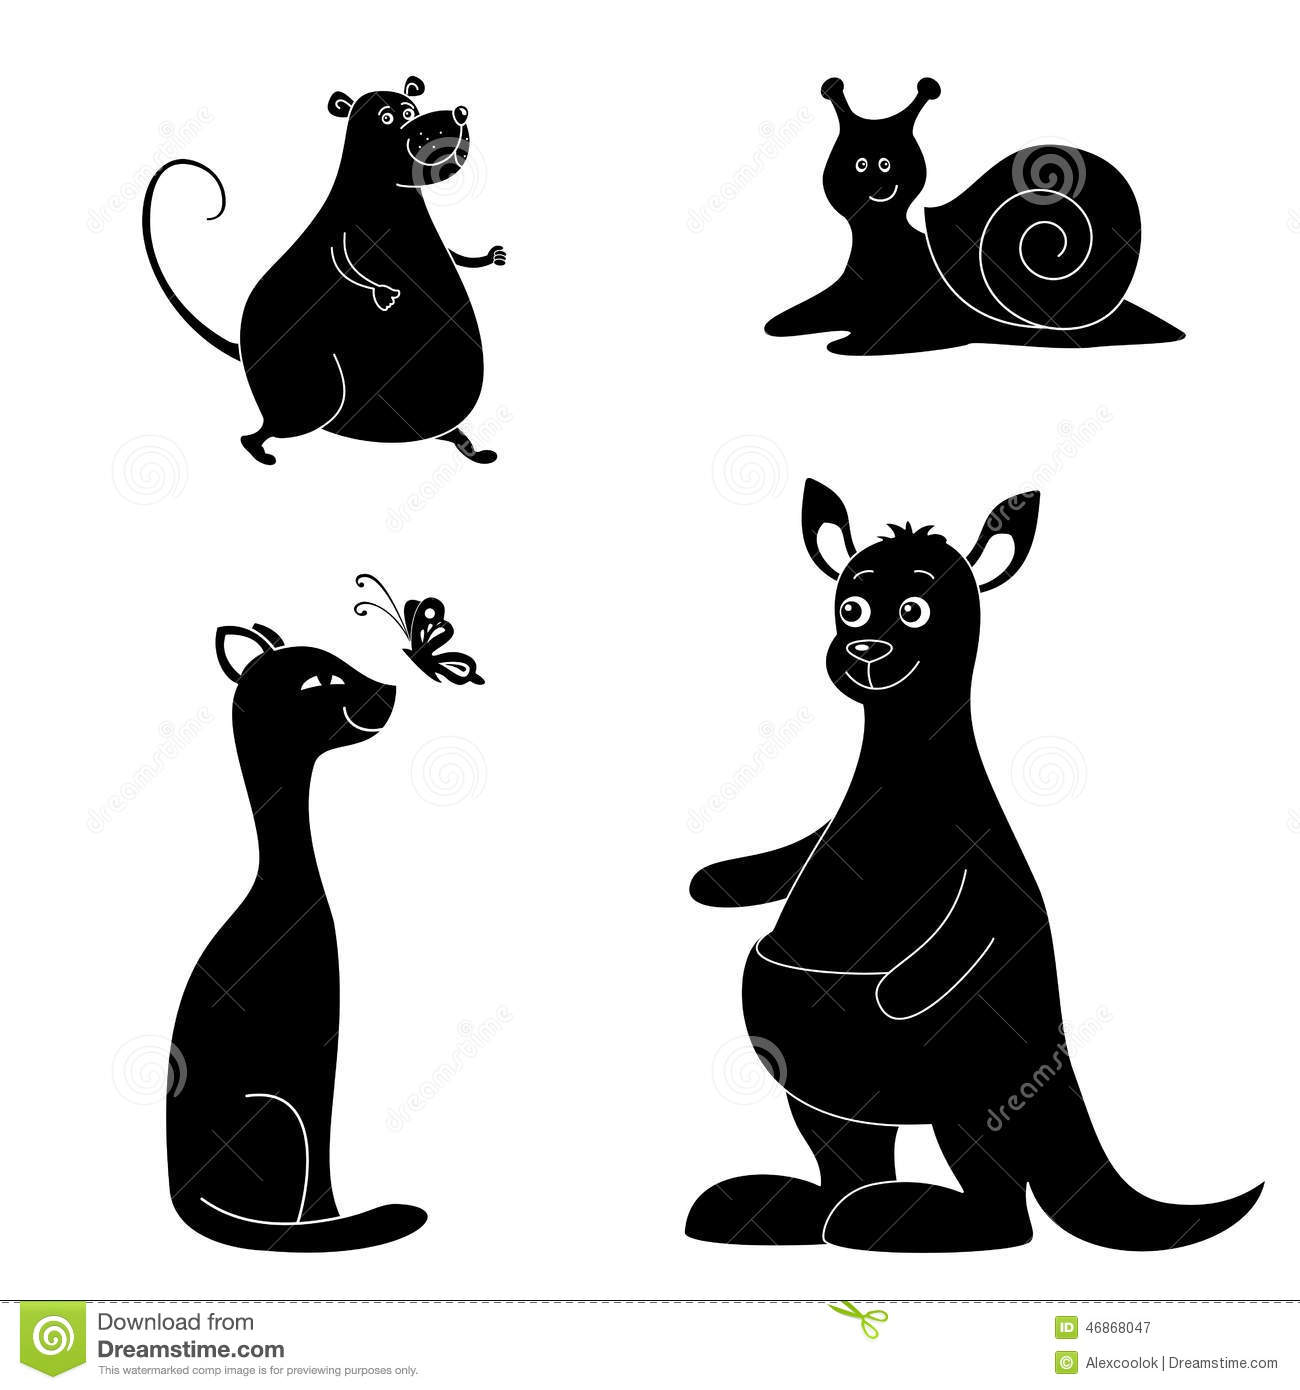 Monochrome Silhouette Of Snail Drawing Outline Cartoon Vector